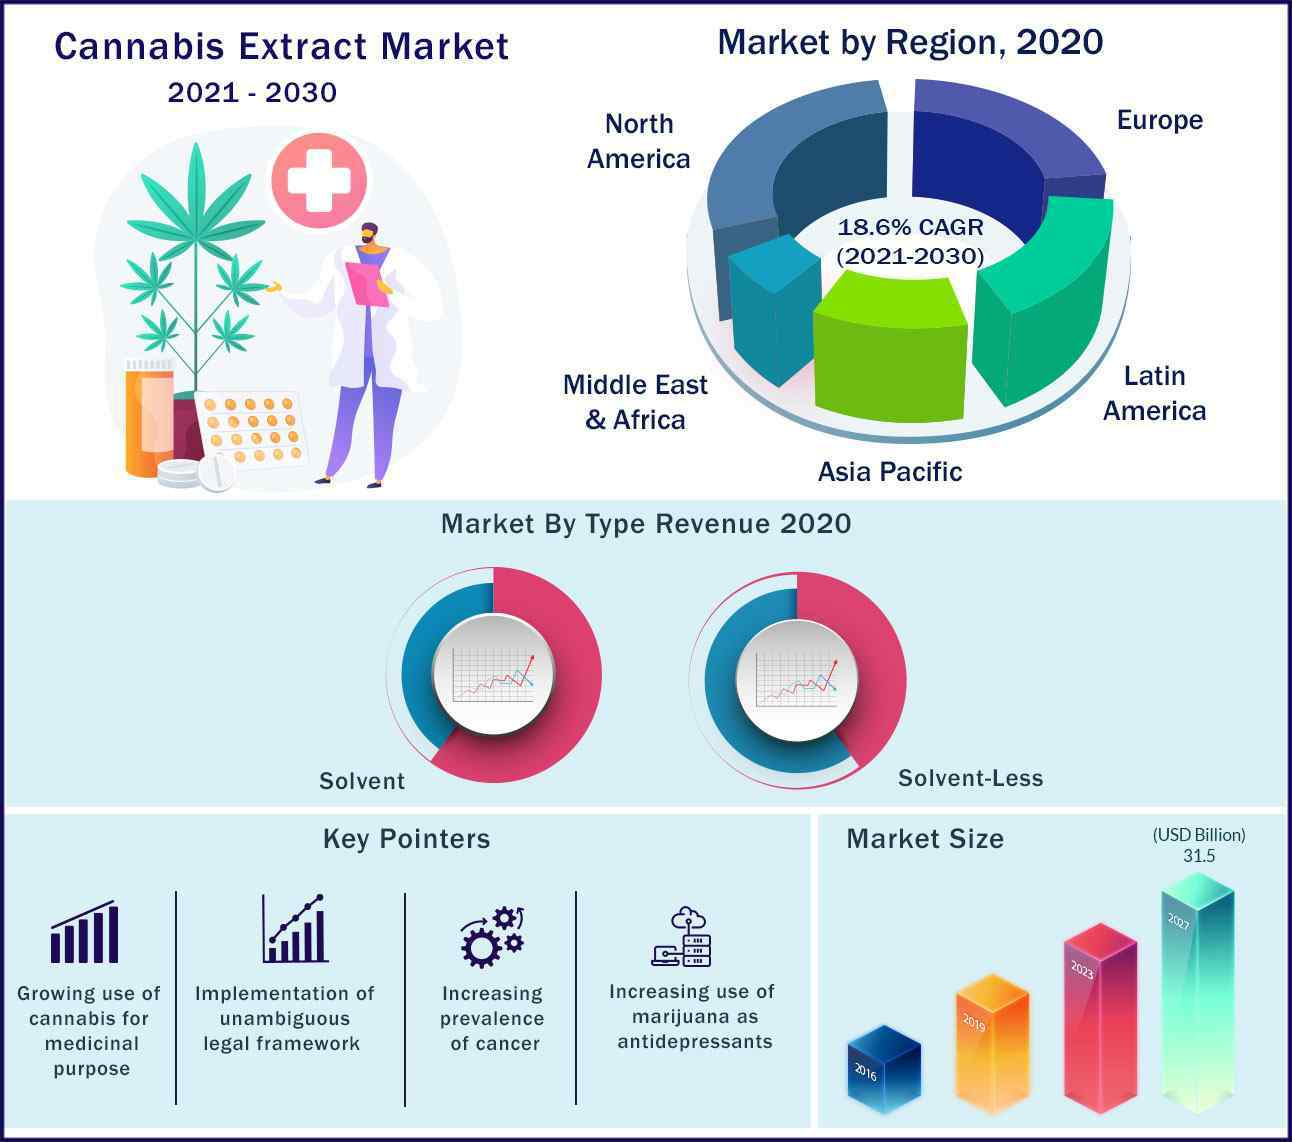 Global Cannabis Extract Market 2021 to 2030